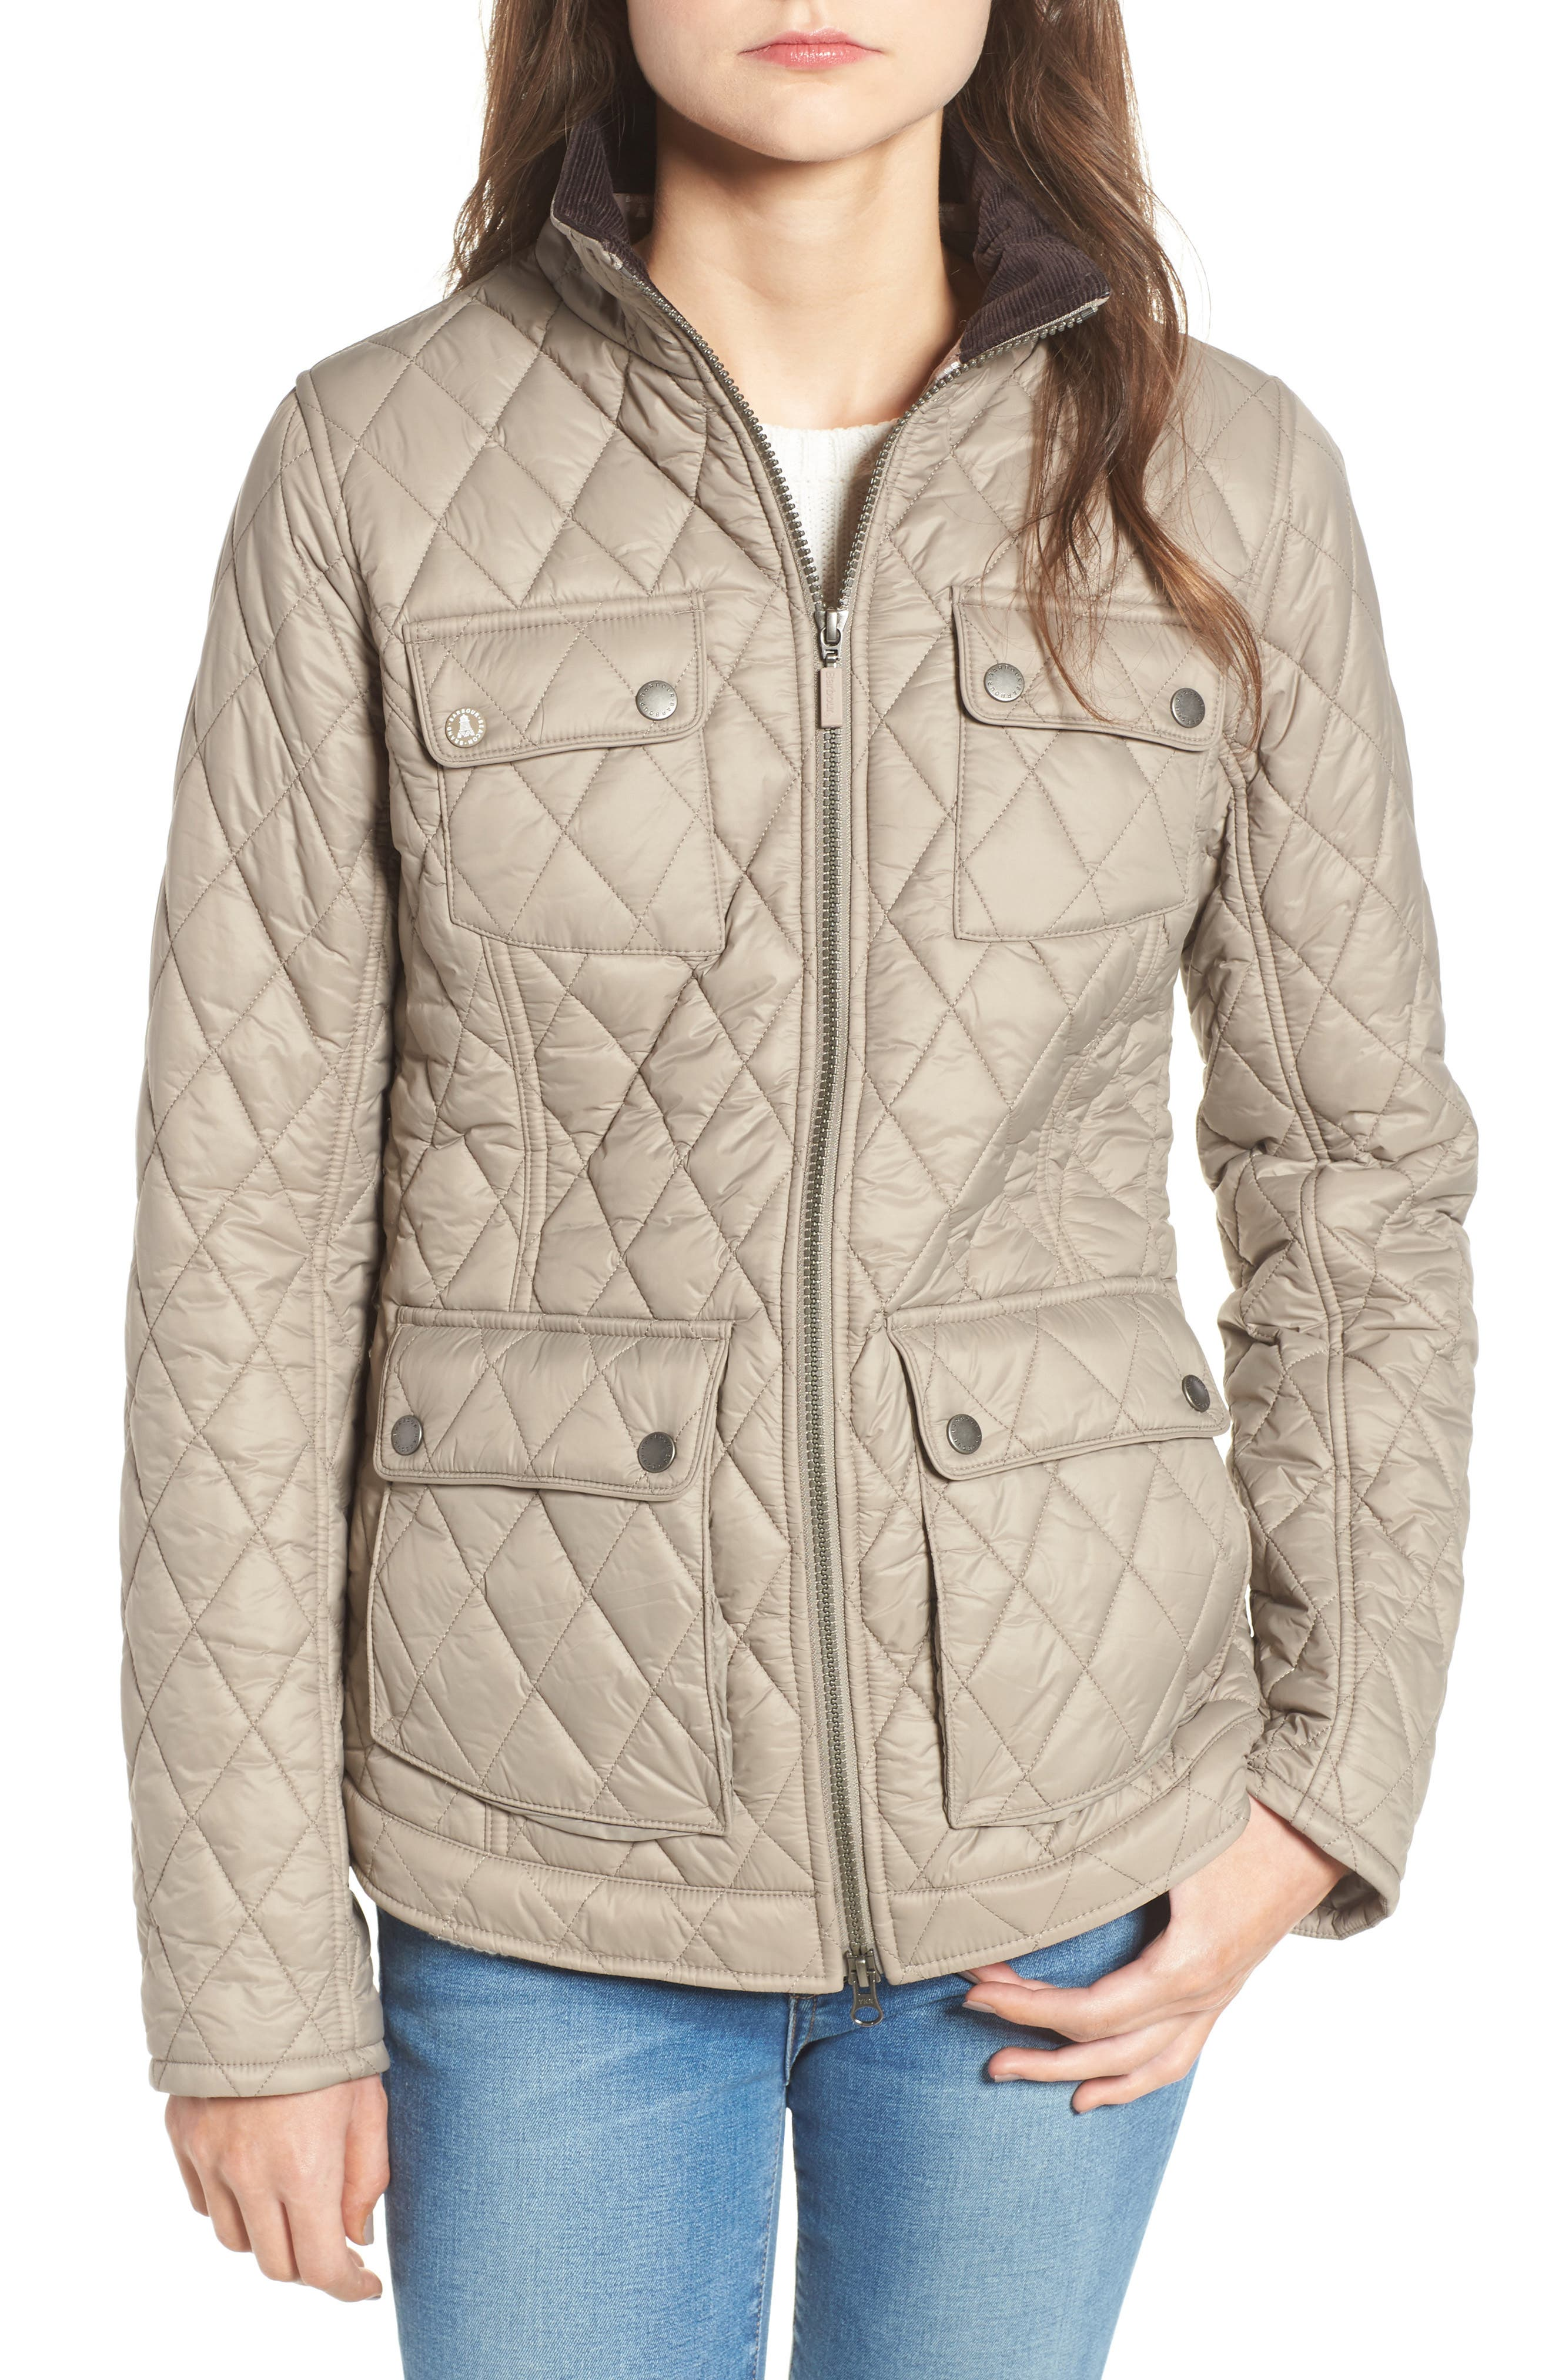 Main Image - Barbour Dolostone Quilted Jacket